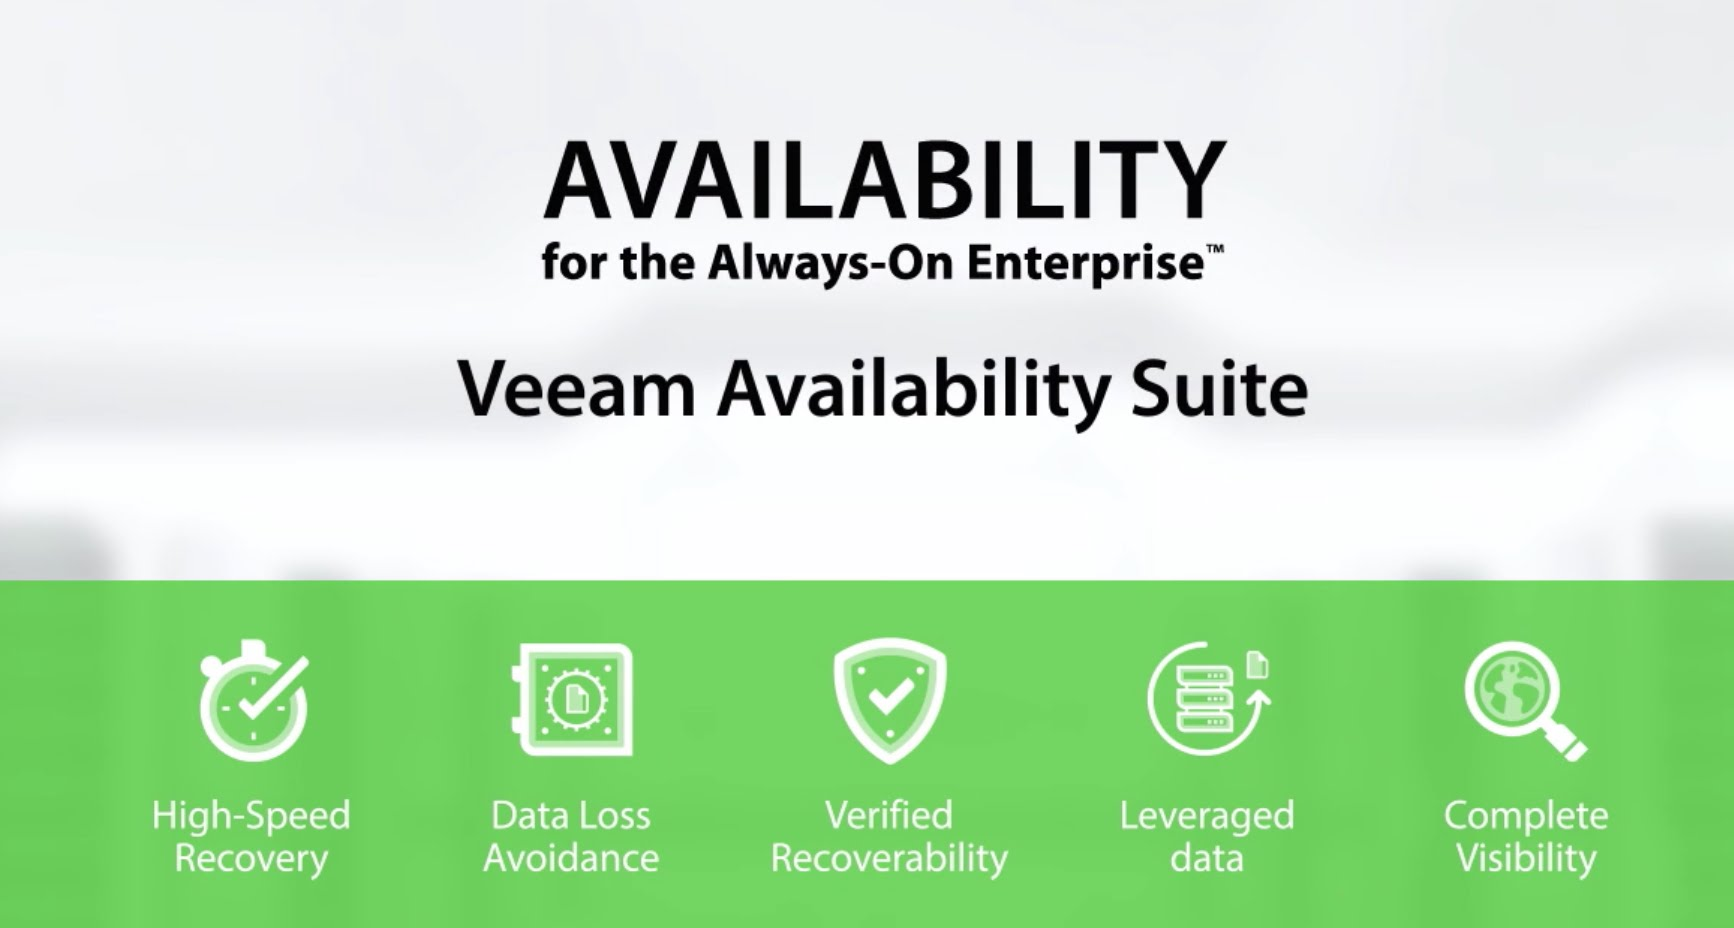 veeam availability suite pinnacle computer service evansville in